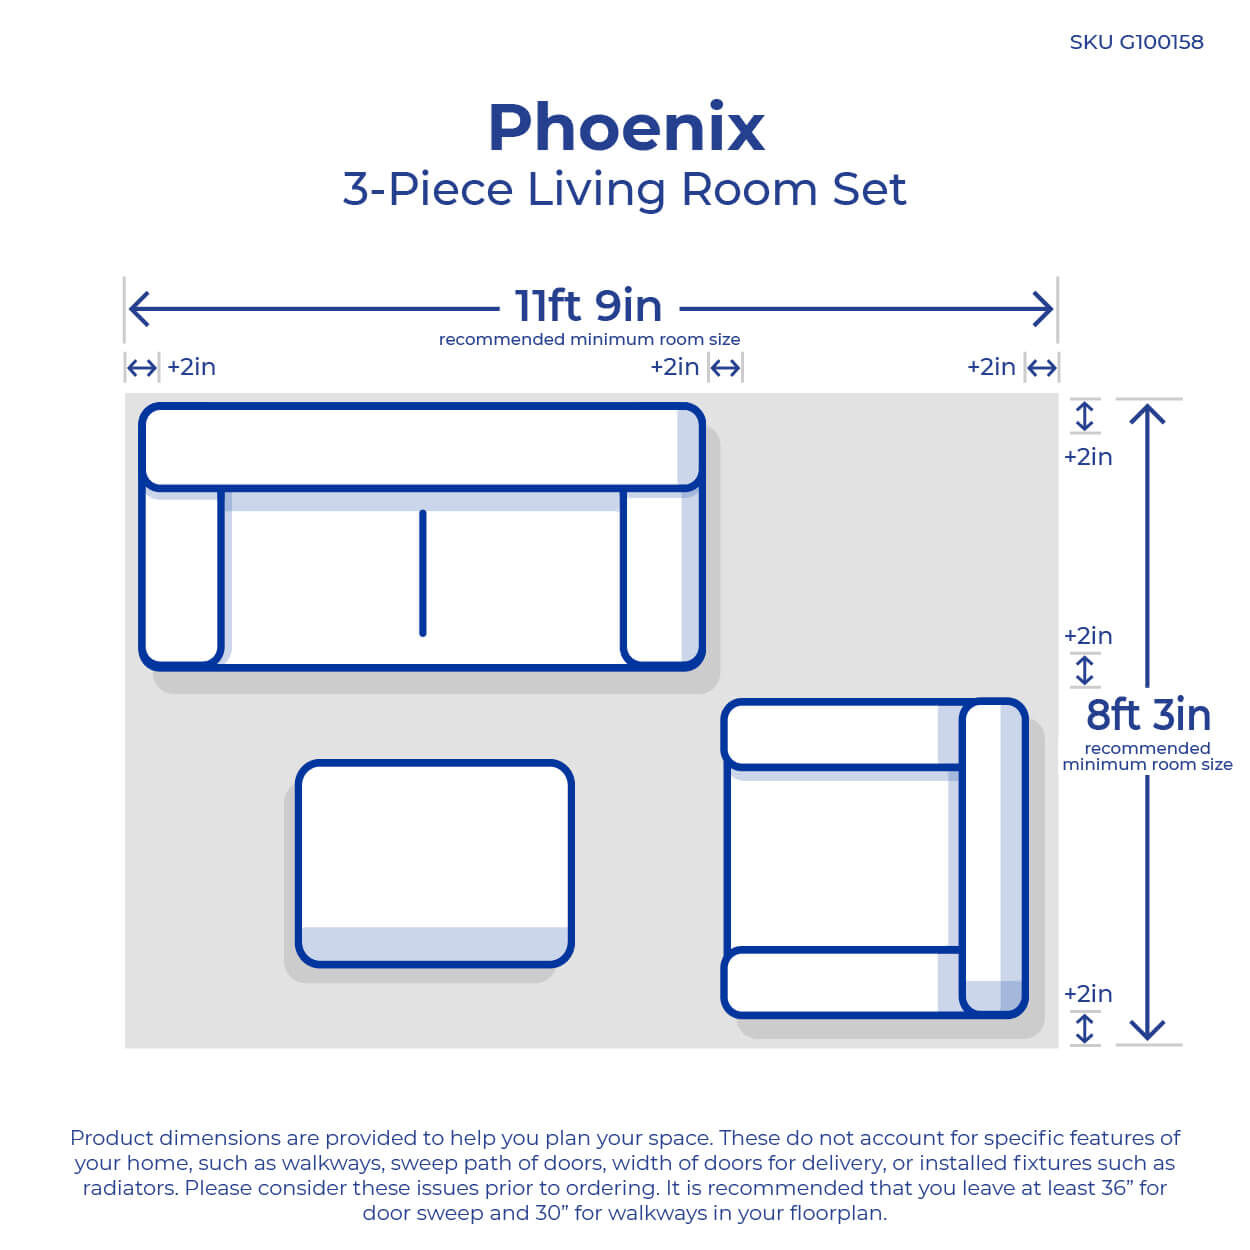 hight resolution of 3 piece phoenix living room collection